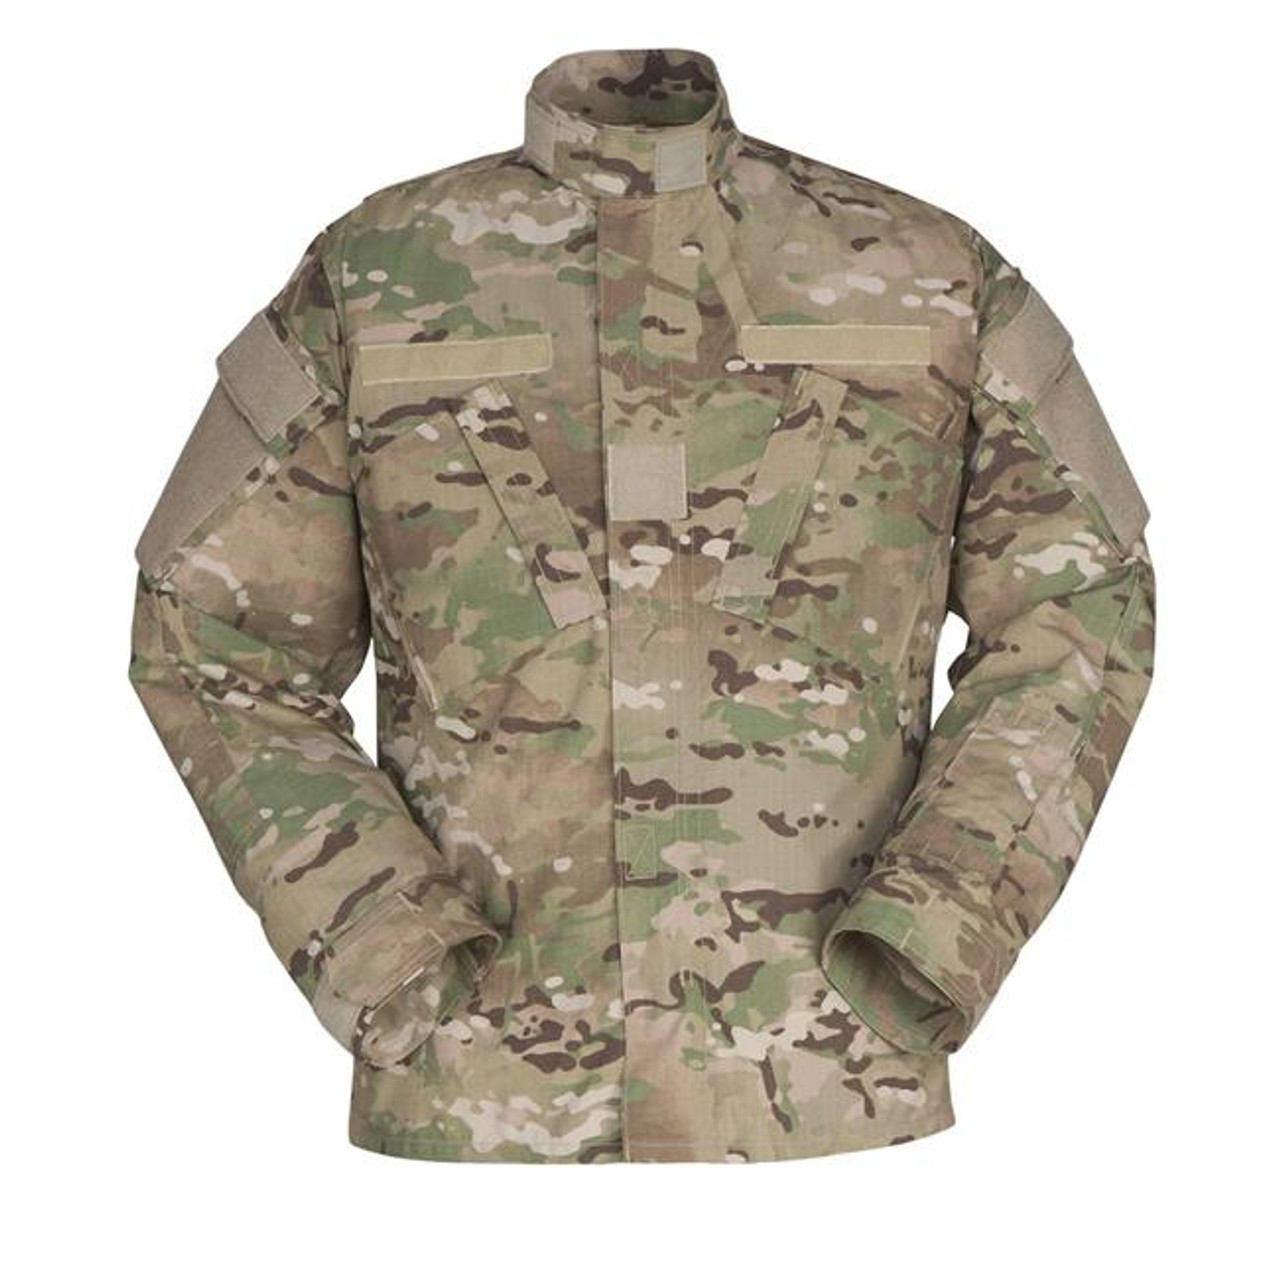 473d1a956cd8 Propper Flame Resistant ACU Coats - F5468-67